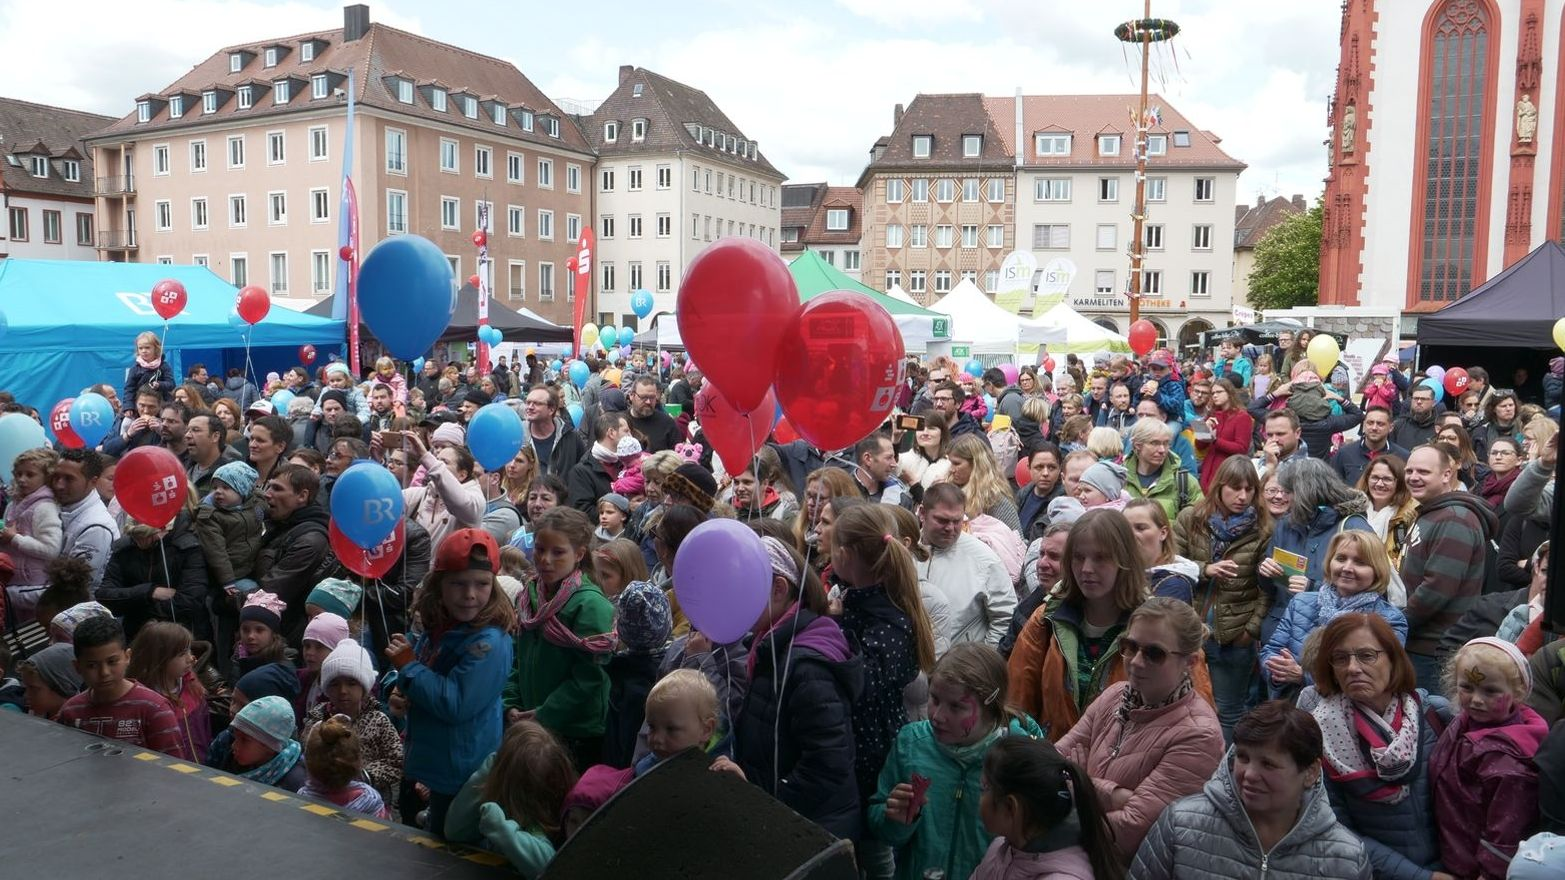 Internationales Kinderfest in Würzburg